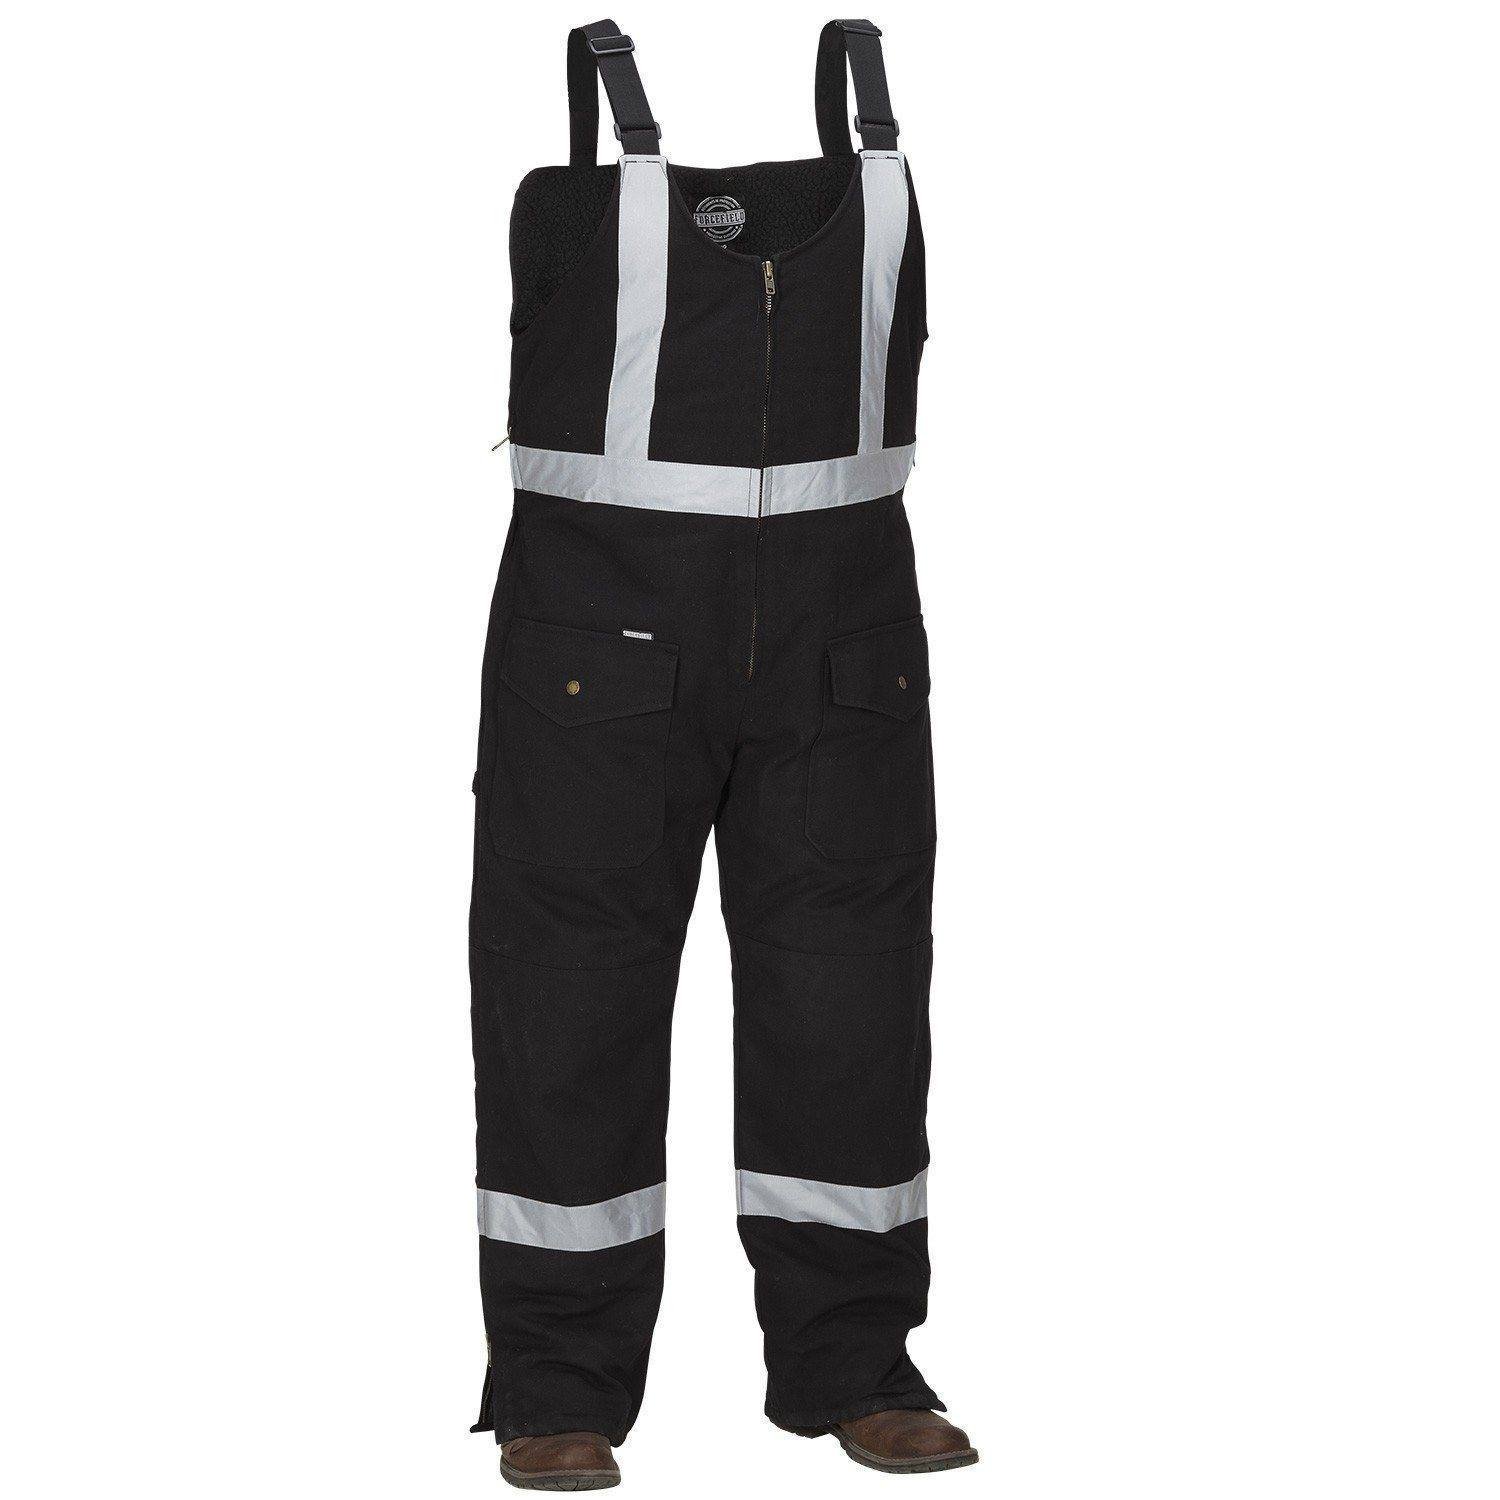 Forcefield Hi-Vis Lined Overall 024-GA35S